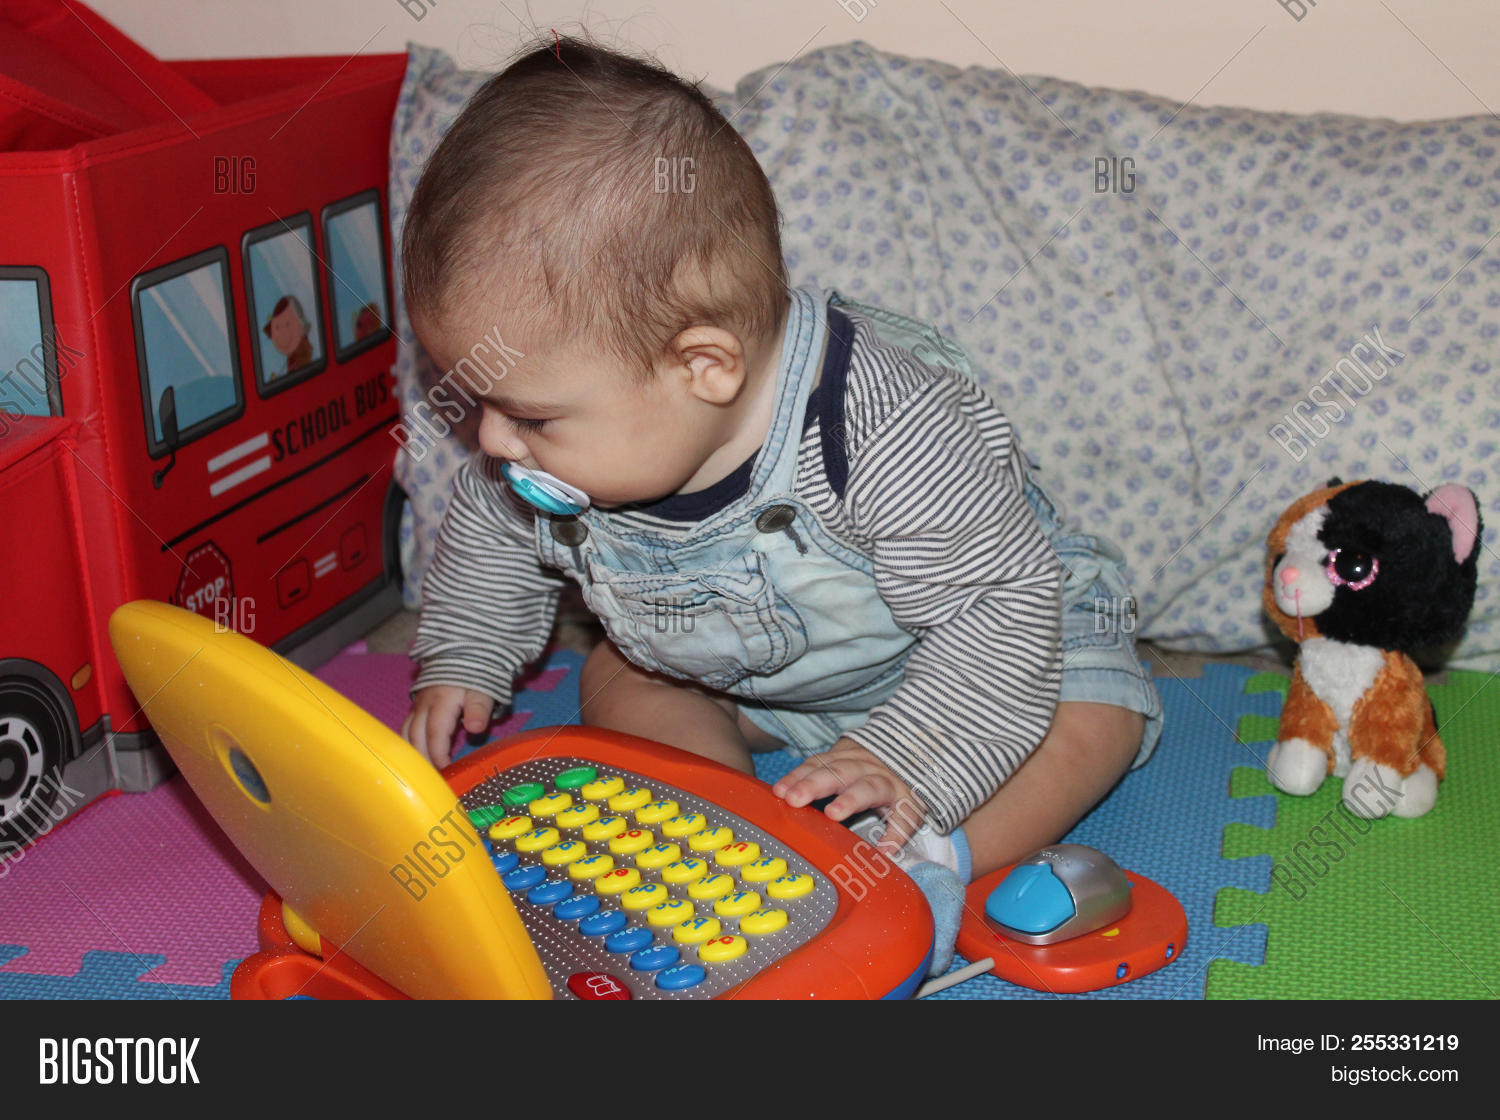 6 Months Old Baby Boy Image Photo Free Trial Bigstock